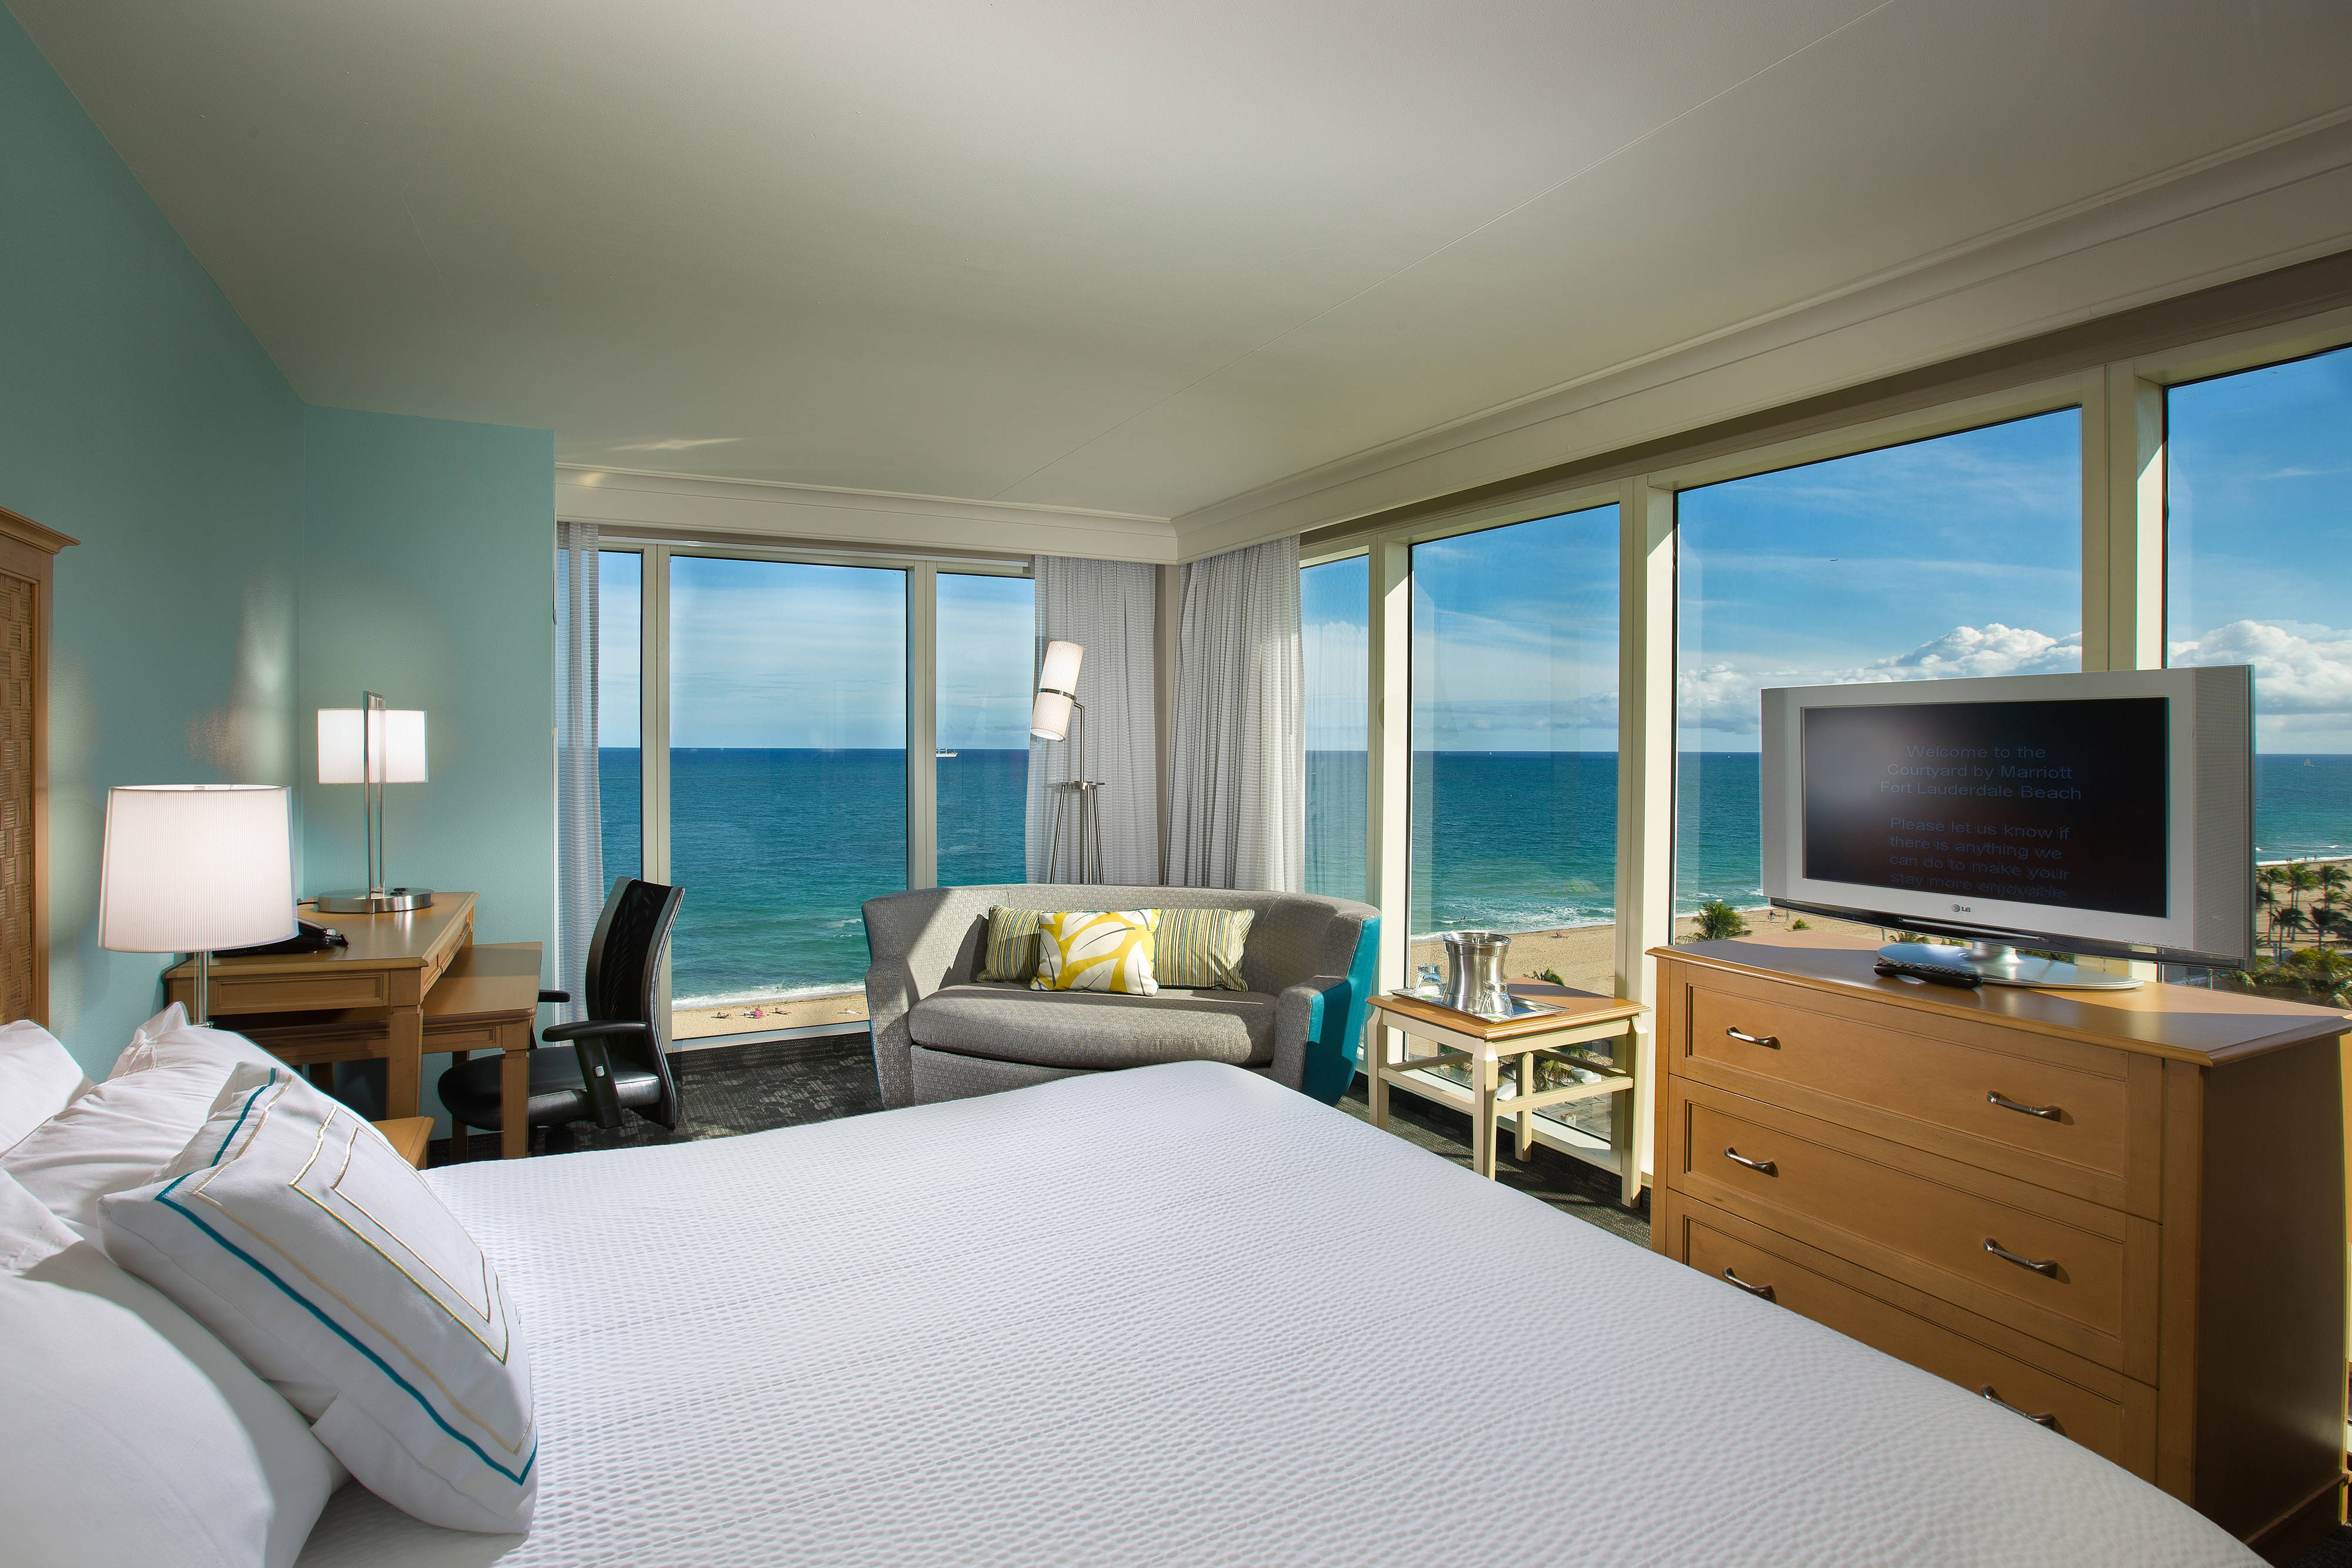 Courtyard Fort Lauderdale Beach Accommodations Rooms And